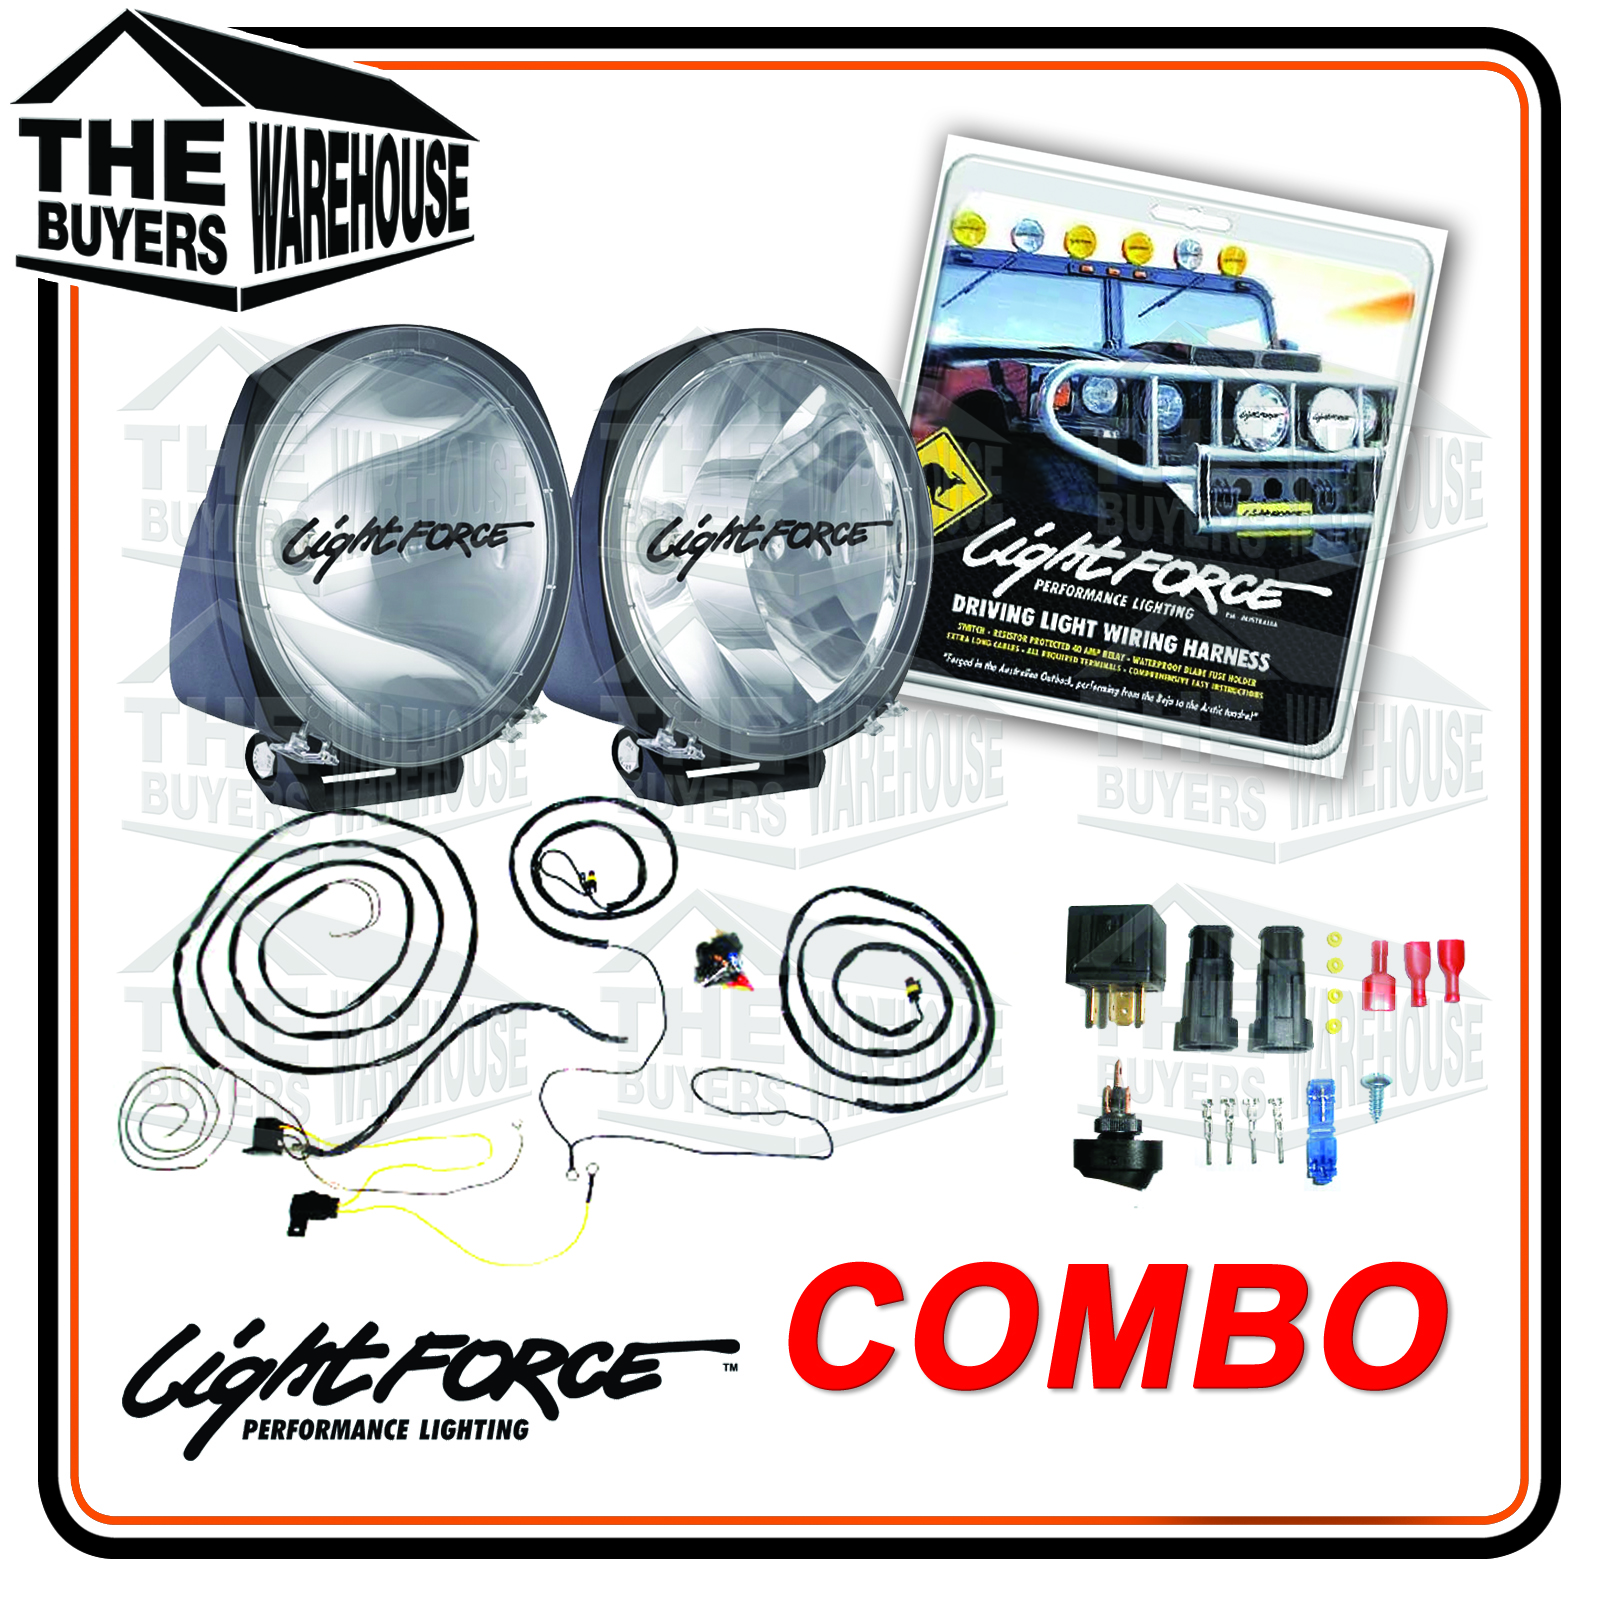 wiring kit 210h drive light combo?w=265 how to wire up driving lights on your 4wd suv the buyers warehouse lightforce wiring harness at cos-gaming.co